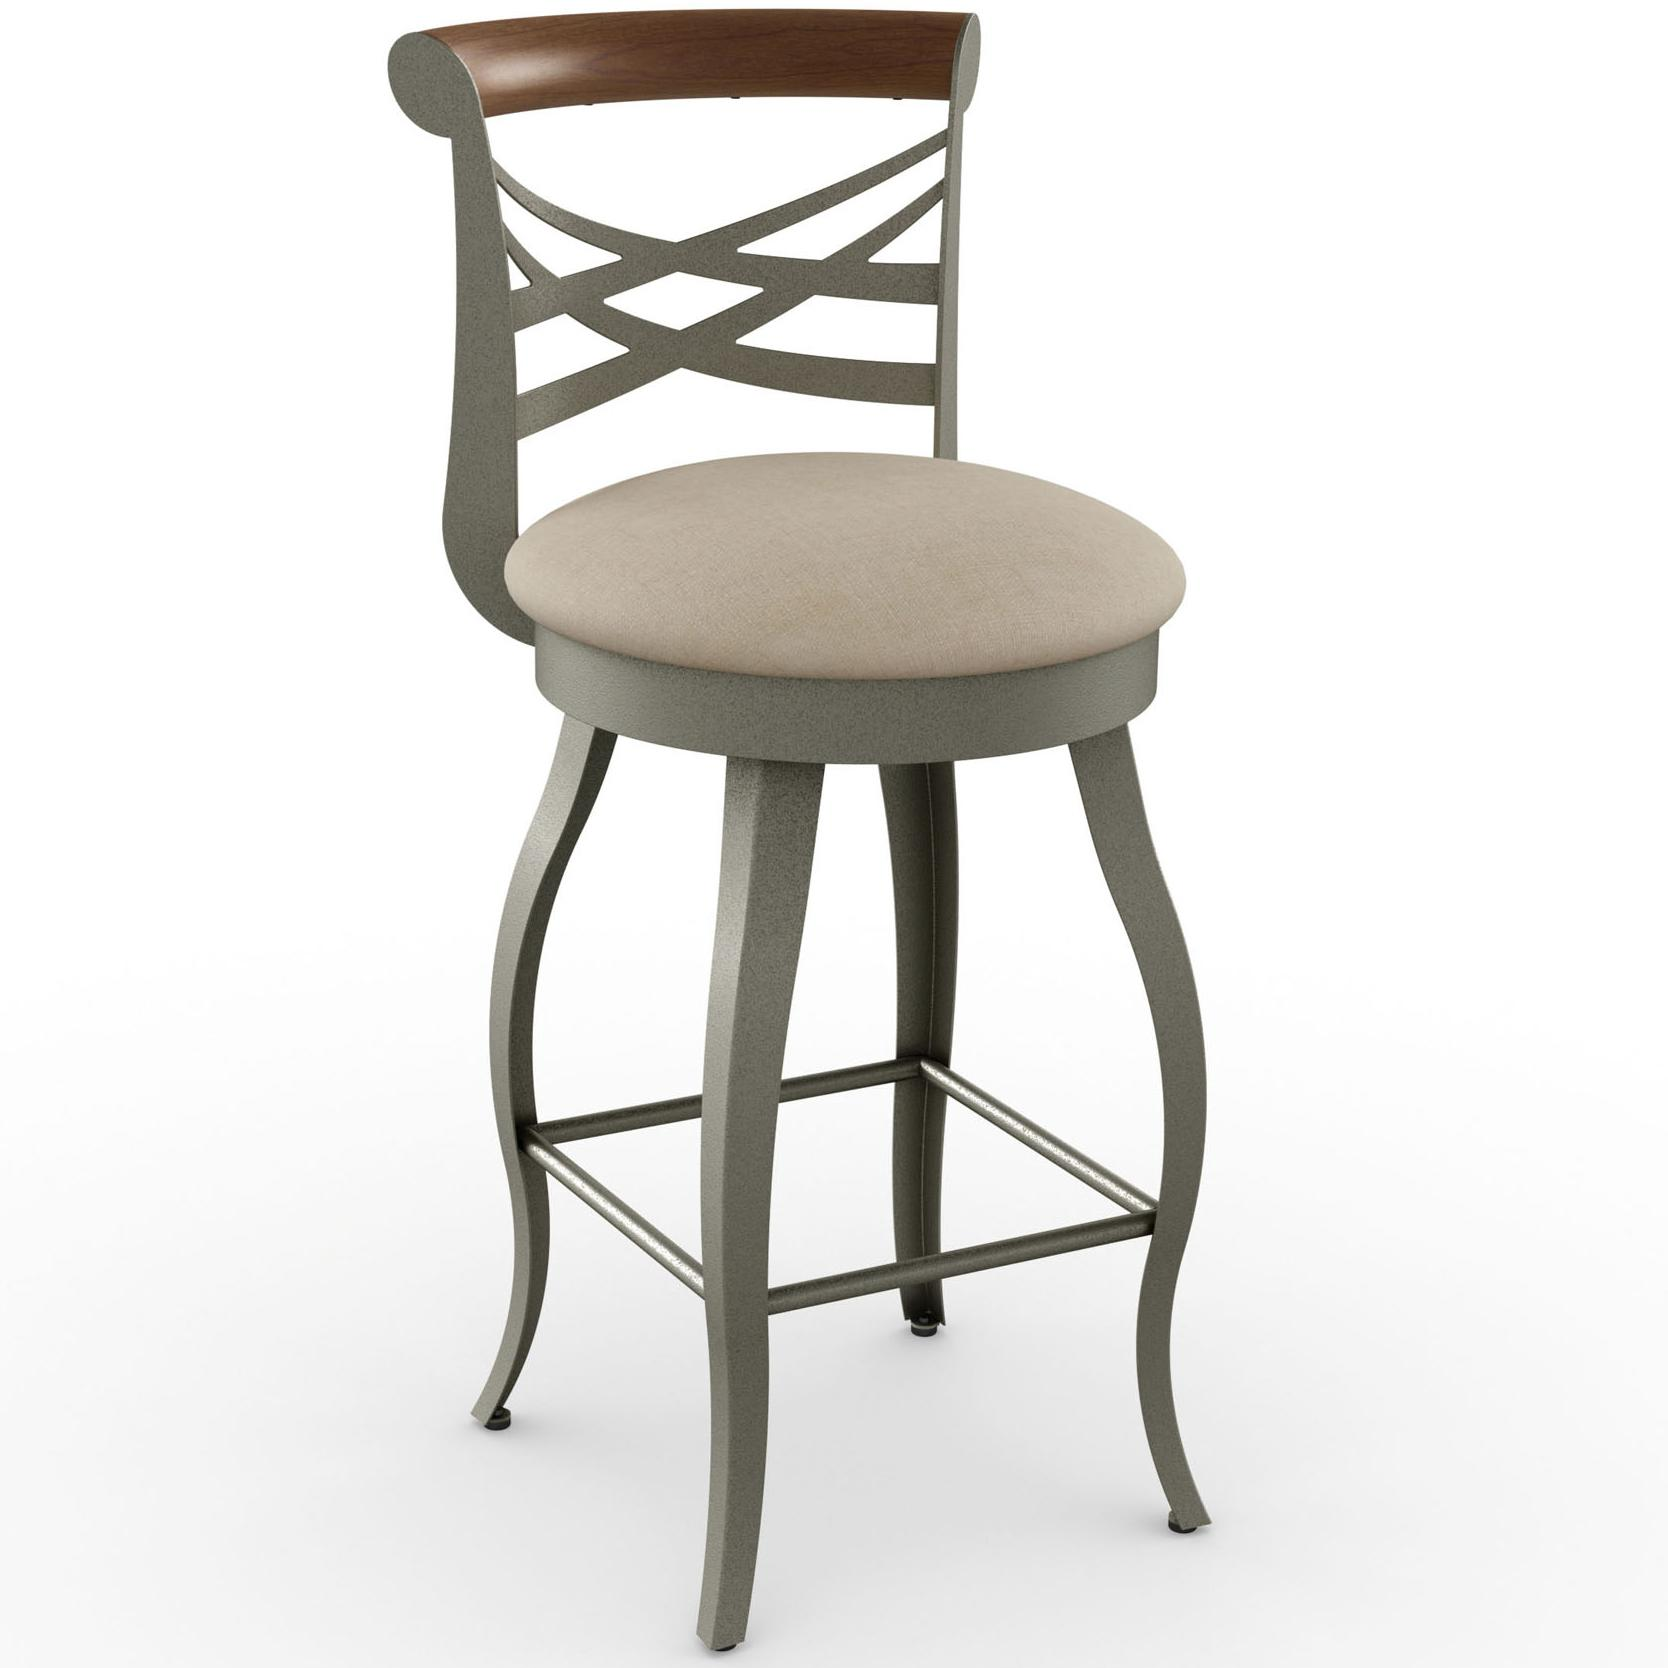 amisco stools 41512 30 transitional whisky bar stool with bowed legs dunk bright furniture. Black Bedroom Furniture Sets. Home Design Ideas